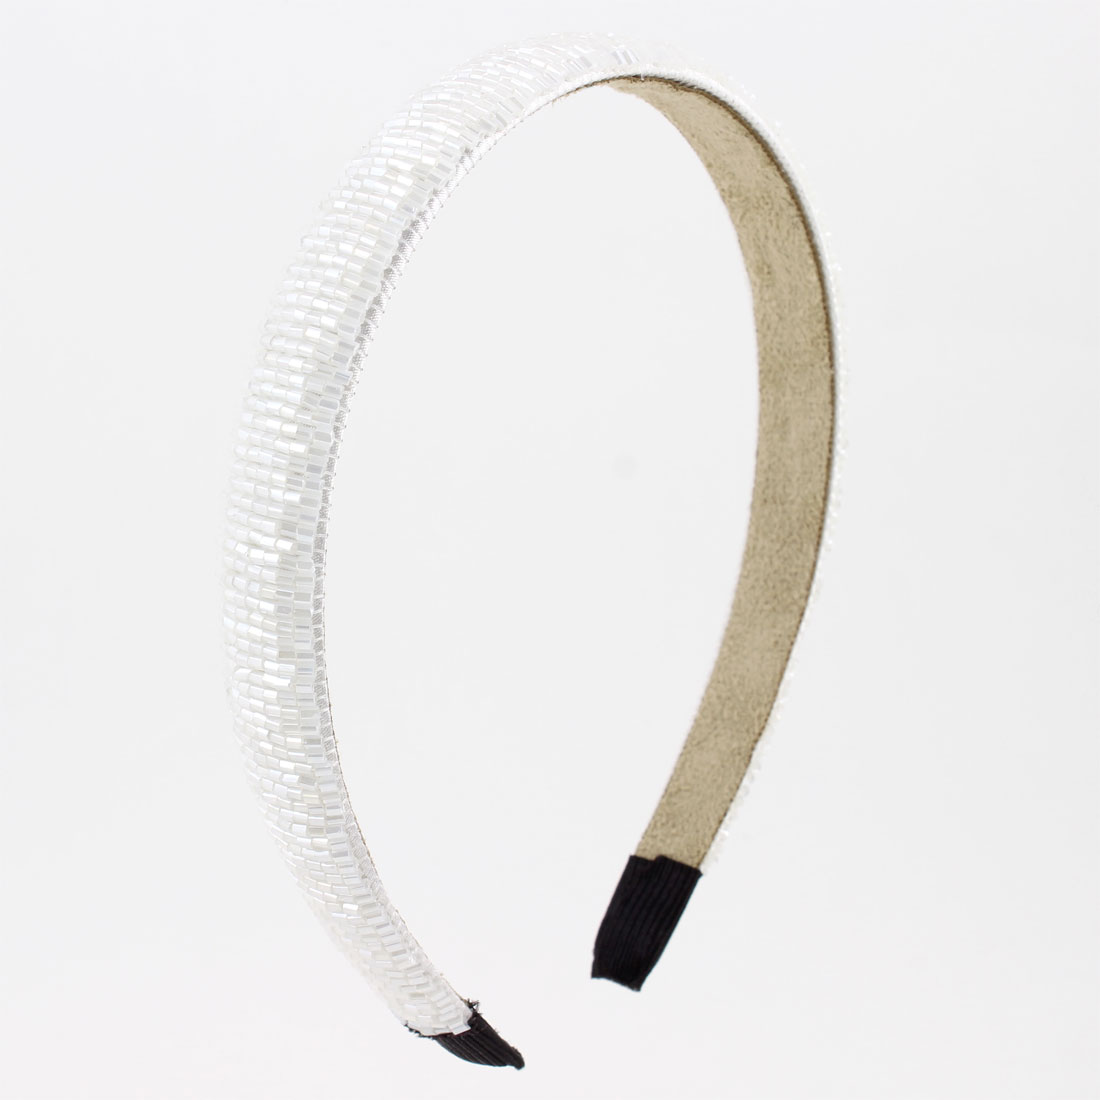 Flannel Lined White Bead Stripe Plastic Narrow Hair Hoop for Lady